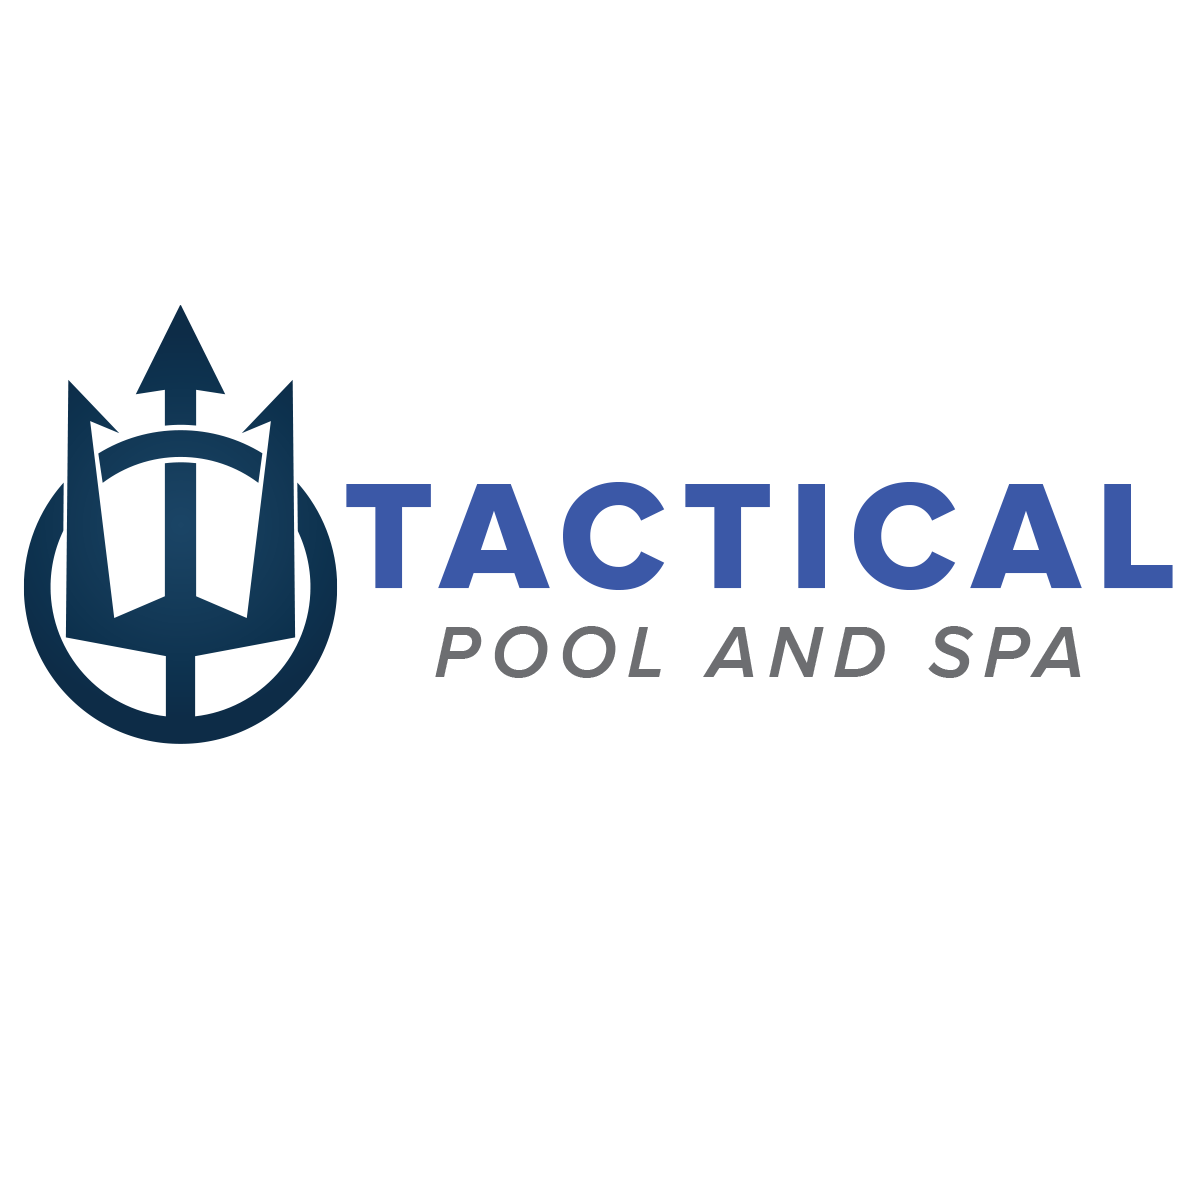 Tactical Pool and Spa LLC - Goodyear, AZ 85338 - (623)200-9892 | ShowMeLocal.com